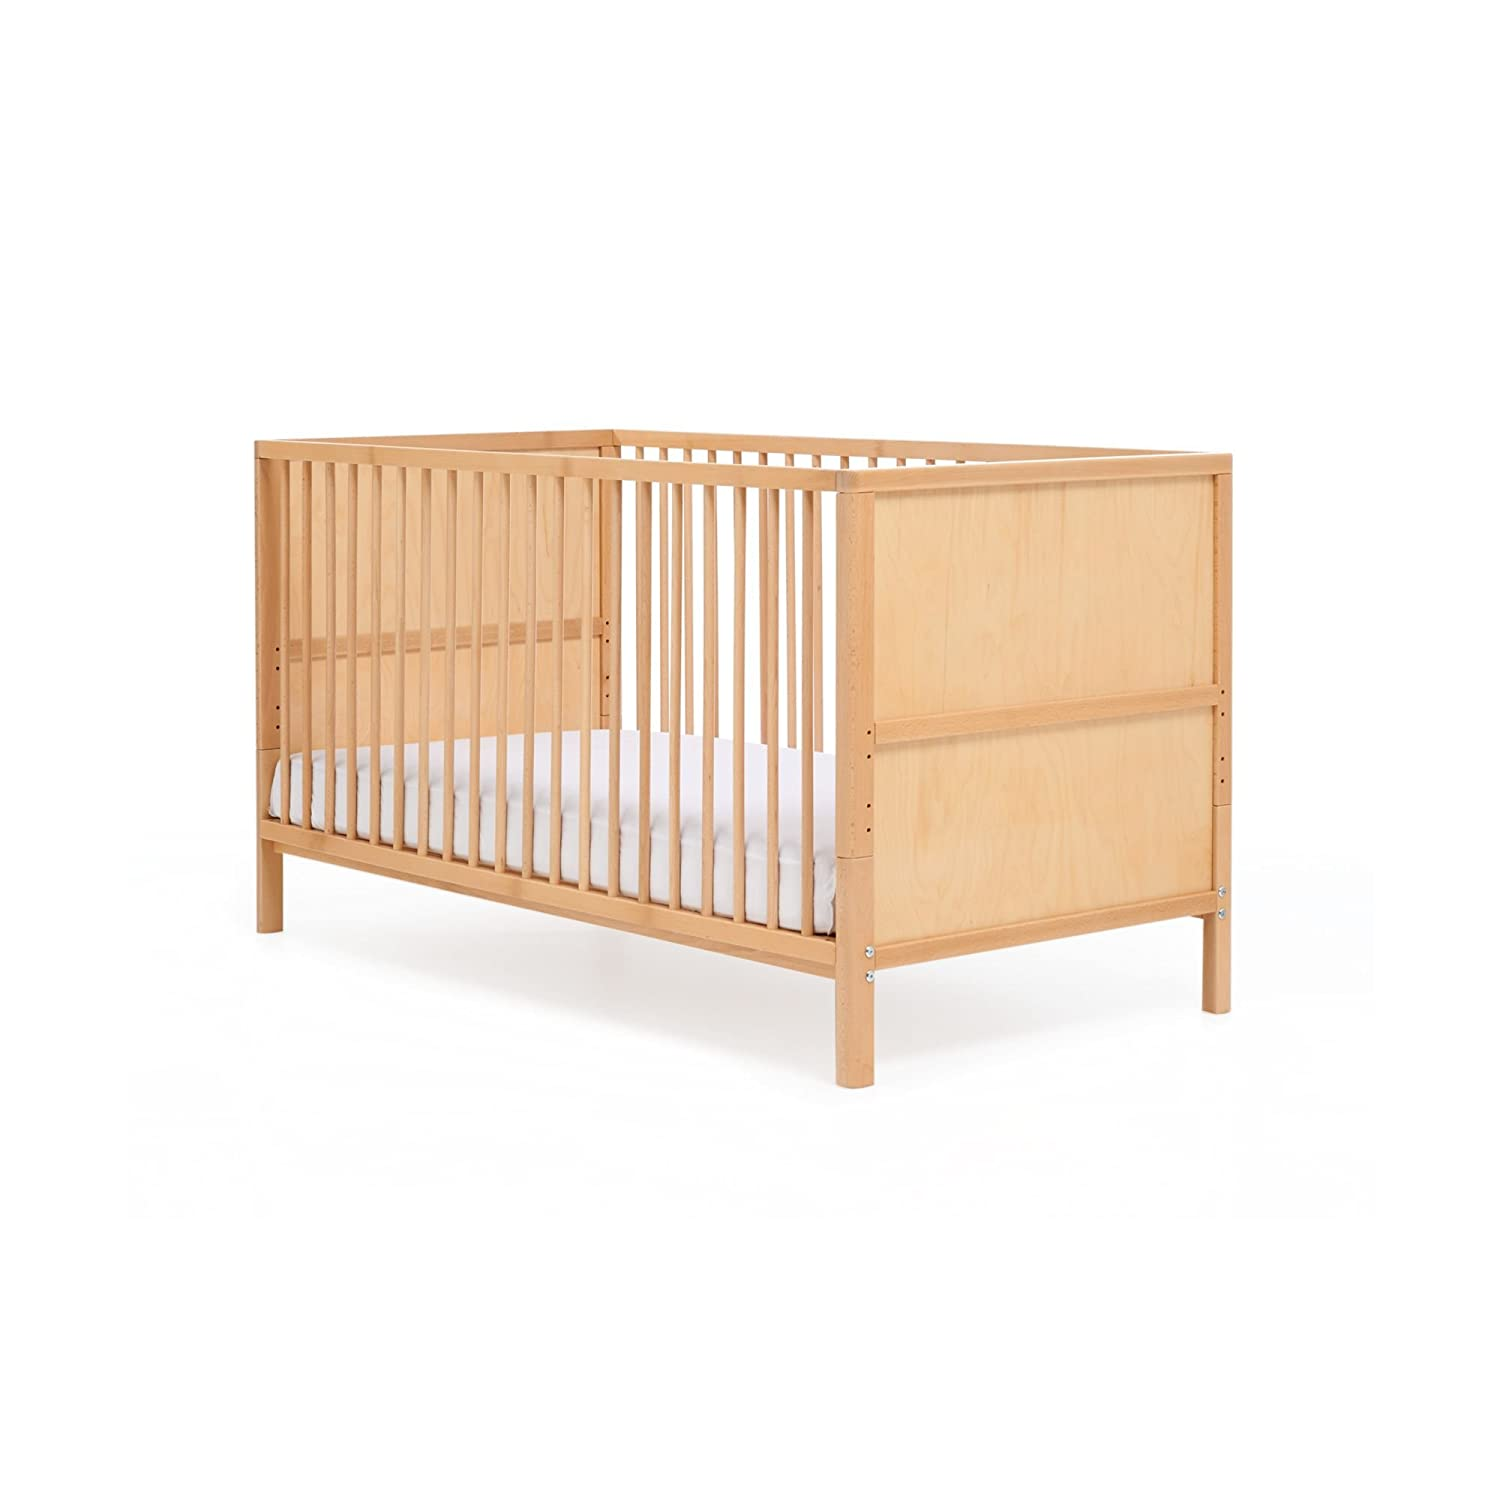 Mothercare Balham Cot Bed (Beech) 811025